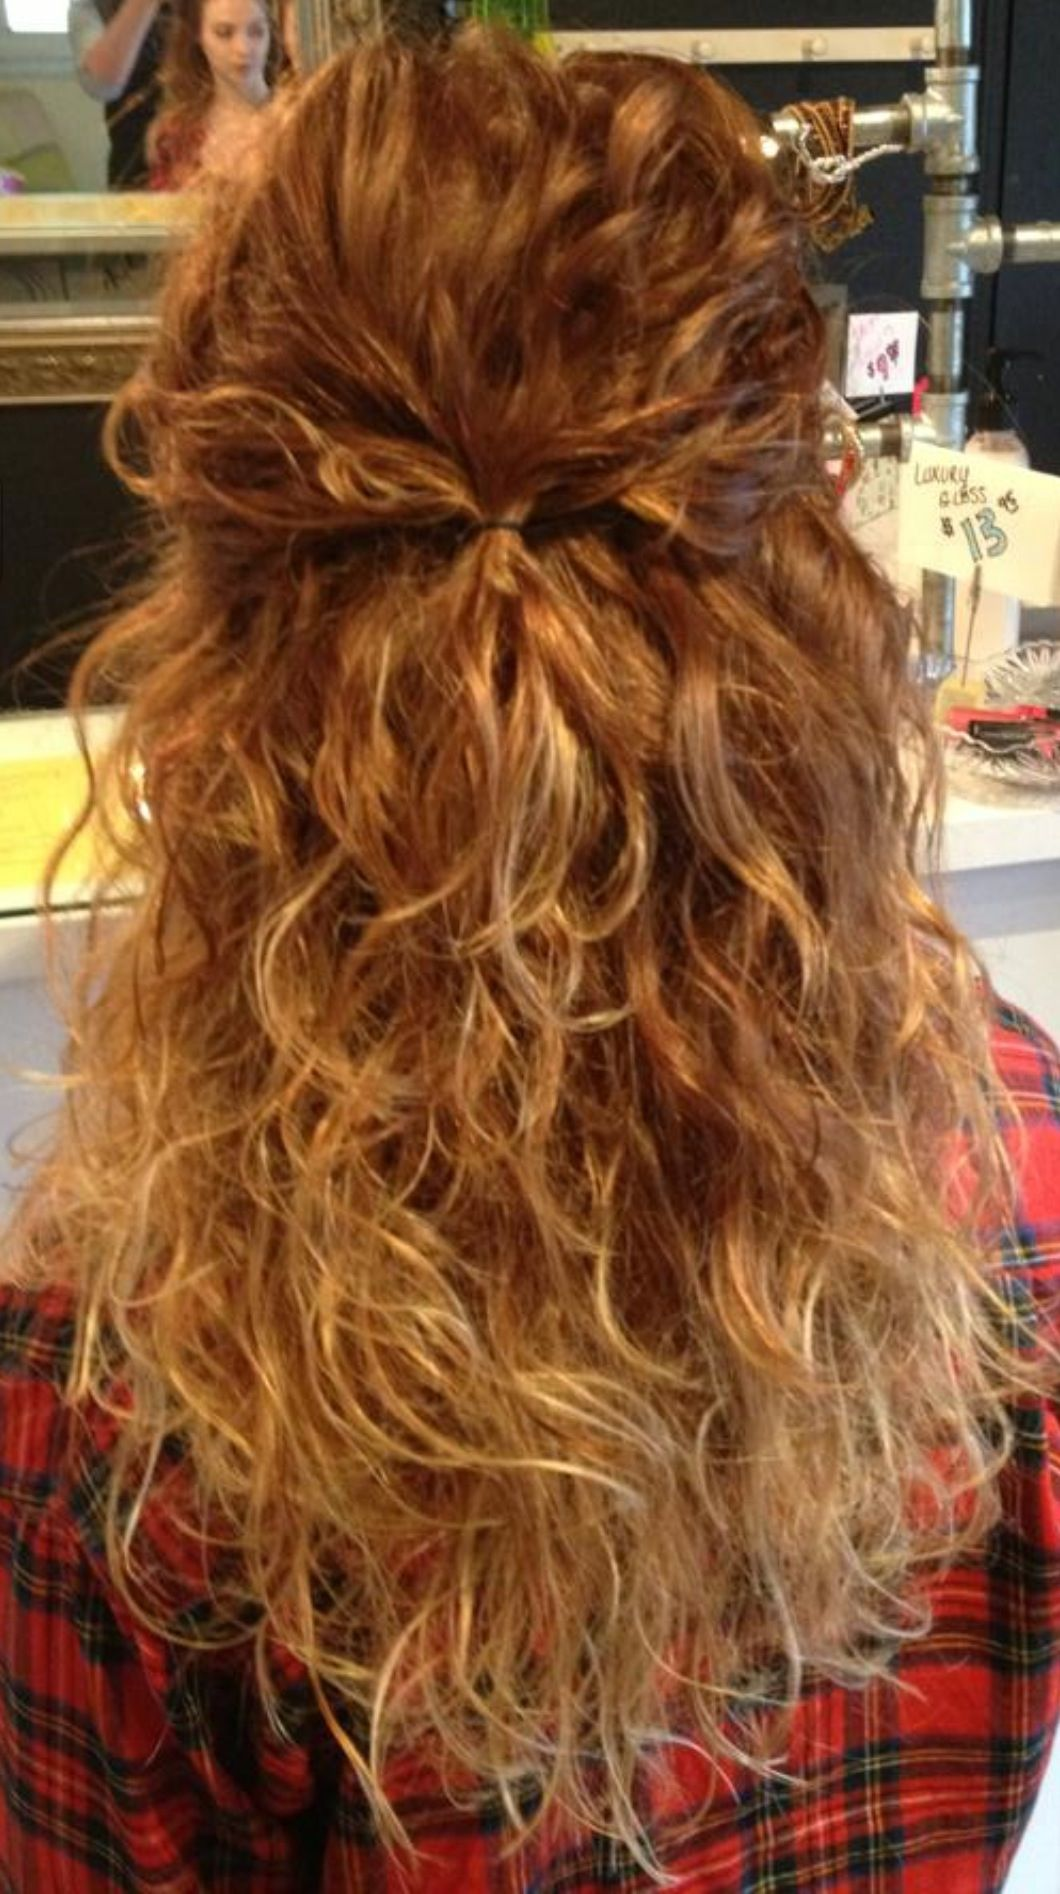 Curly hair long hair ombr by tracey at voila hair curly hair long hair ombr by tracey at voila nvjuhfo Choice Image